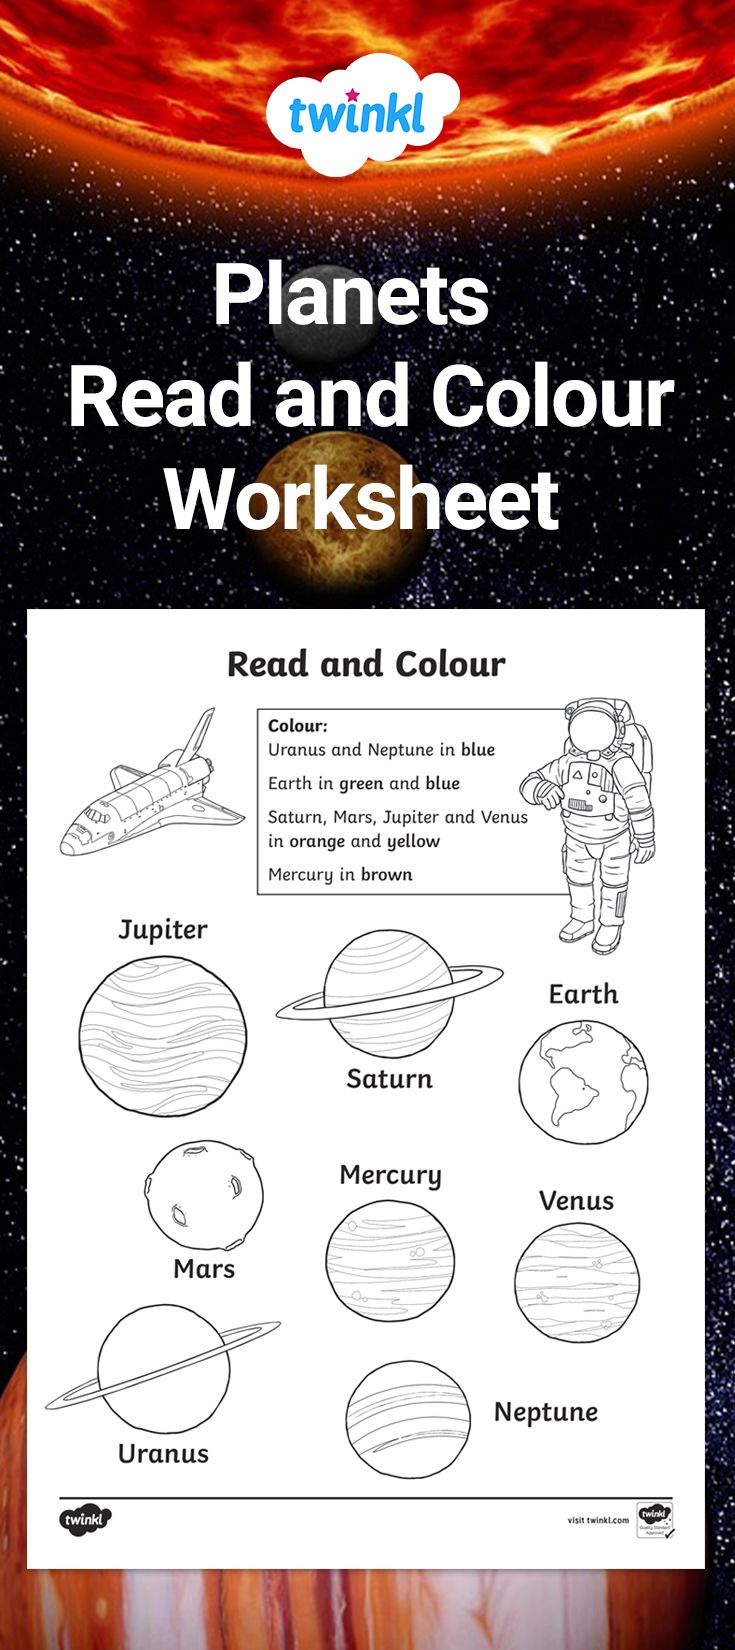 Planet Read And Colour Activity Color Worksheets Kindergarten Worksheets Planets [ 1650 x 735 Pixel ]